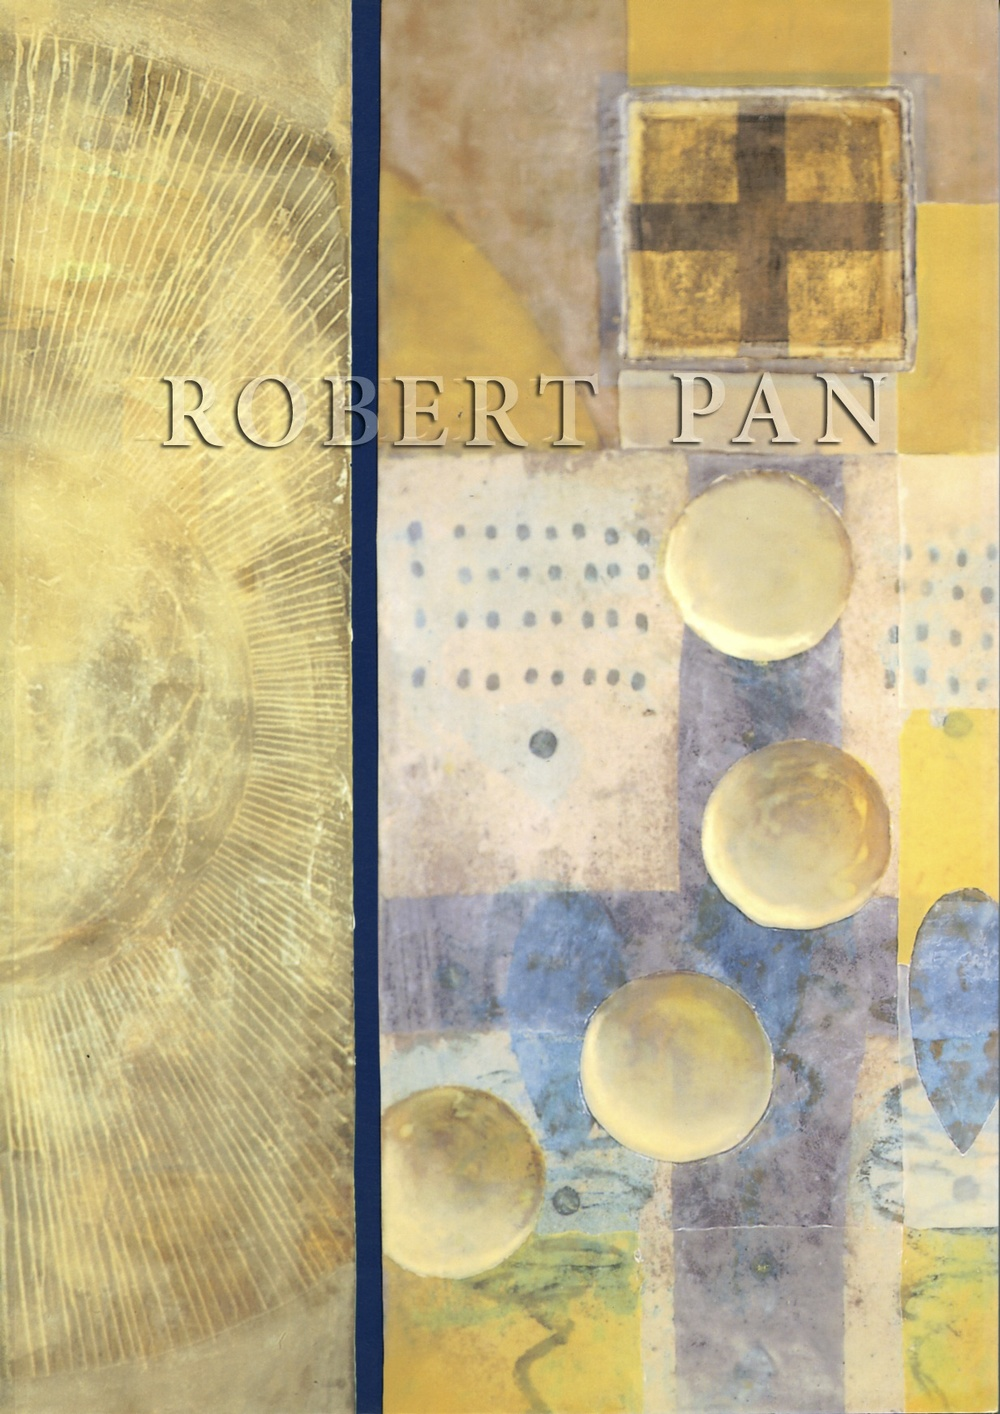 ROBERT PAN 1995 copia.jpg